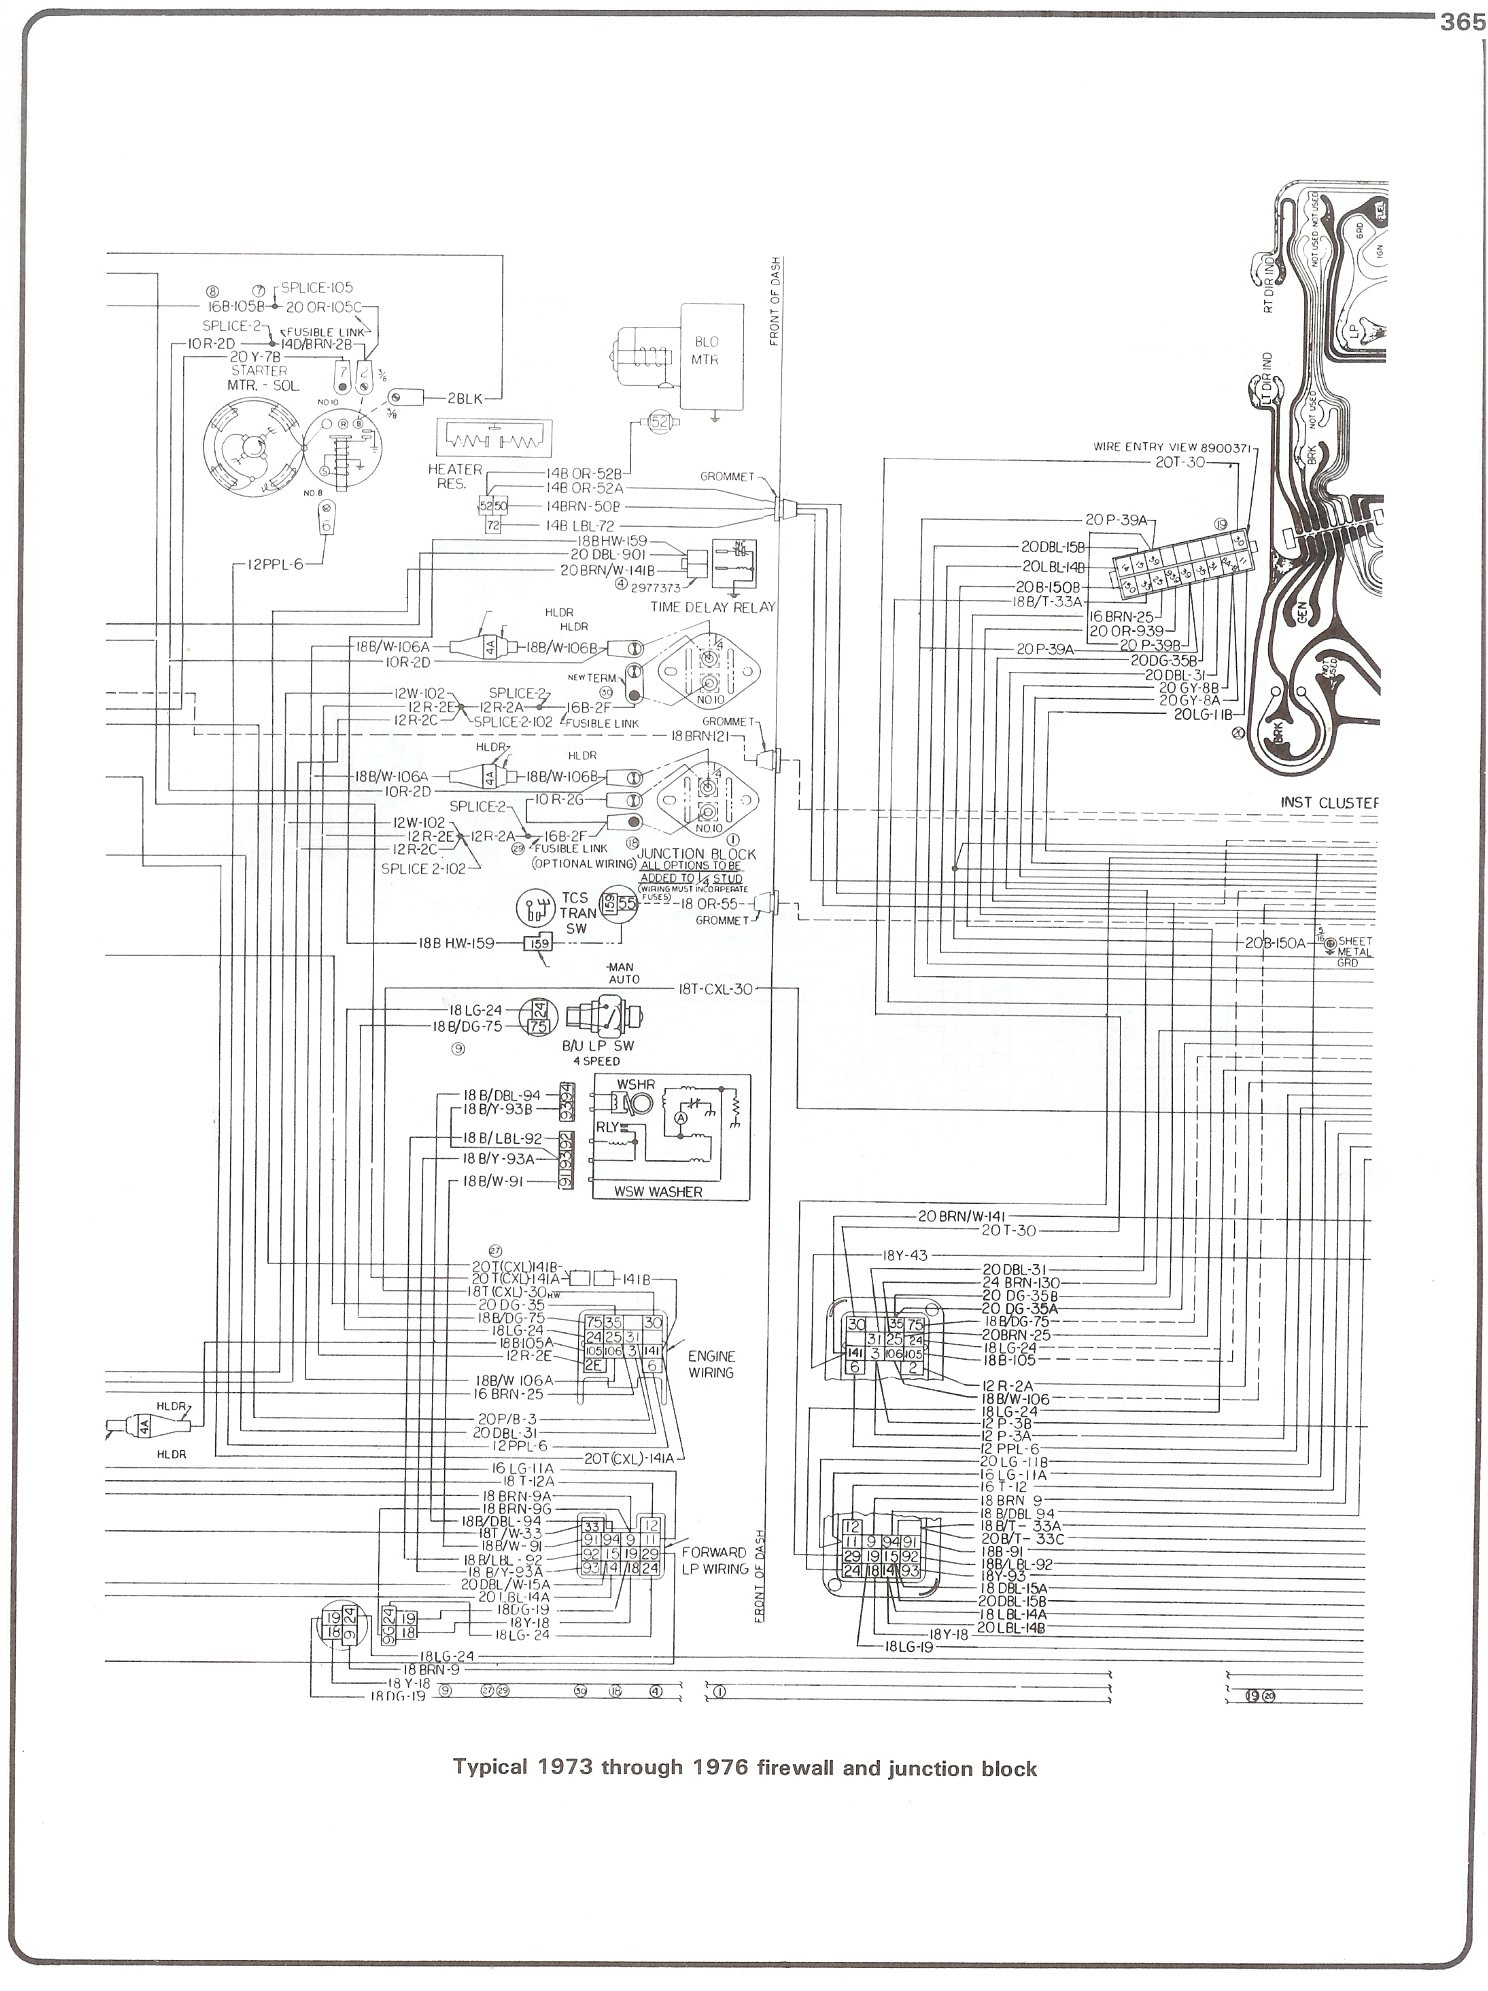 Complete 73 87 Wiring Diagrams 1956 Chevy Wiring Harness Diagram 1976 Chevy  Truck Wire Harness